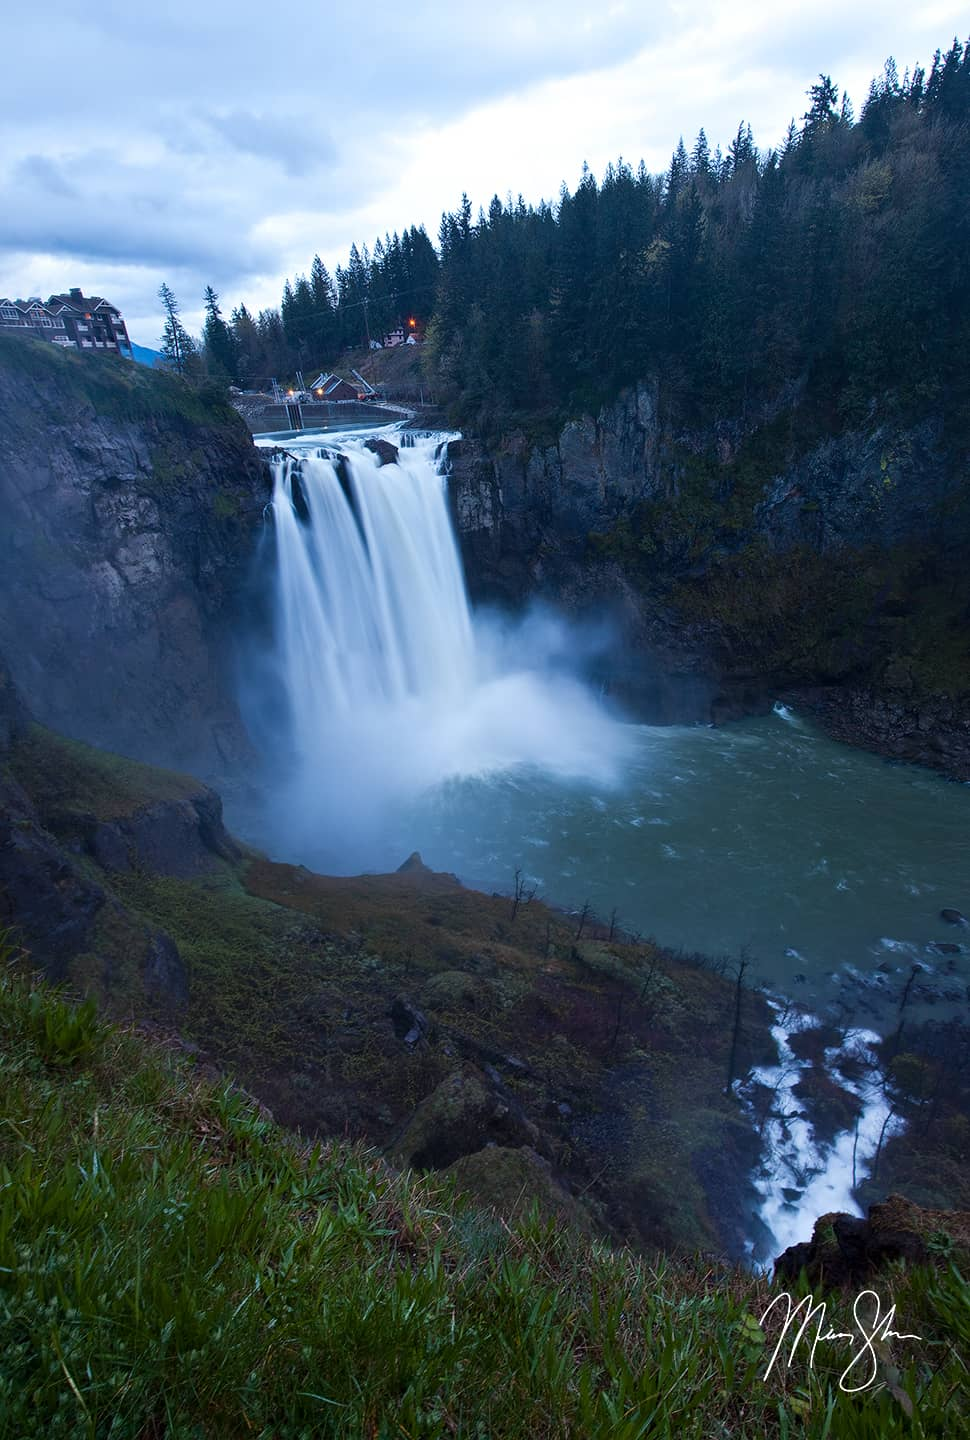 Spring at Snoqualmie Falls